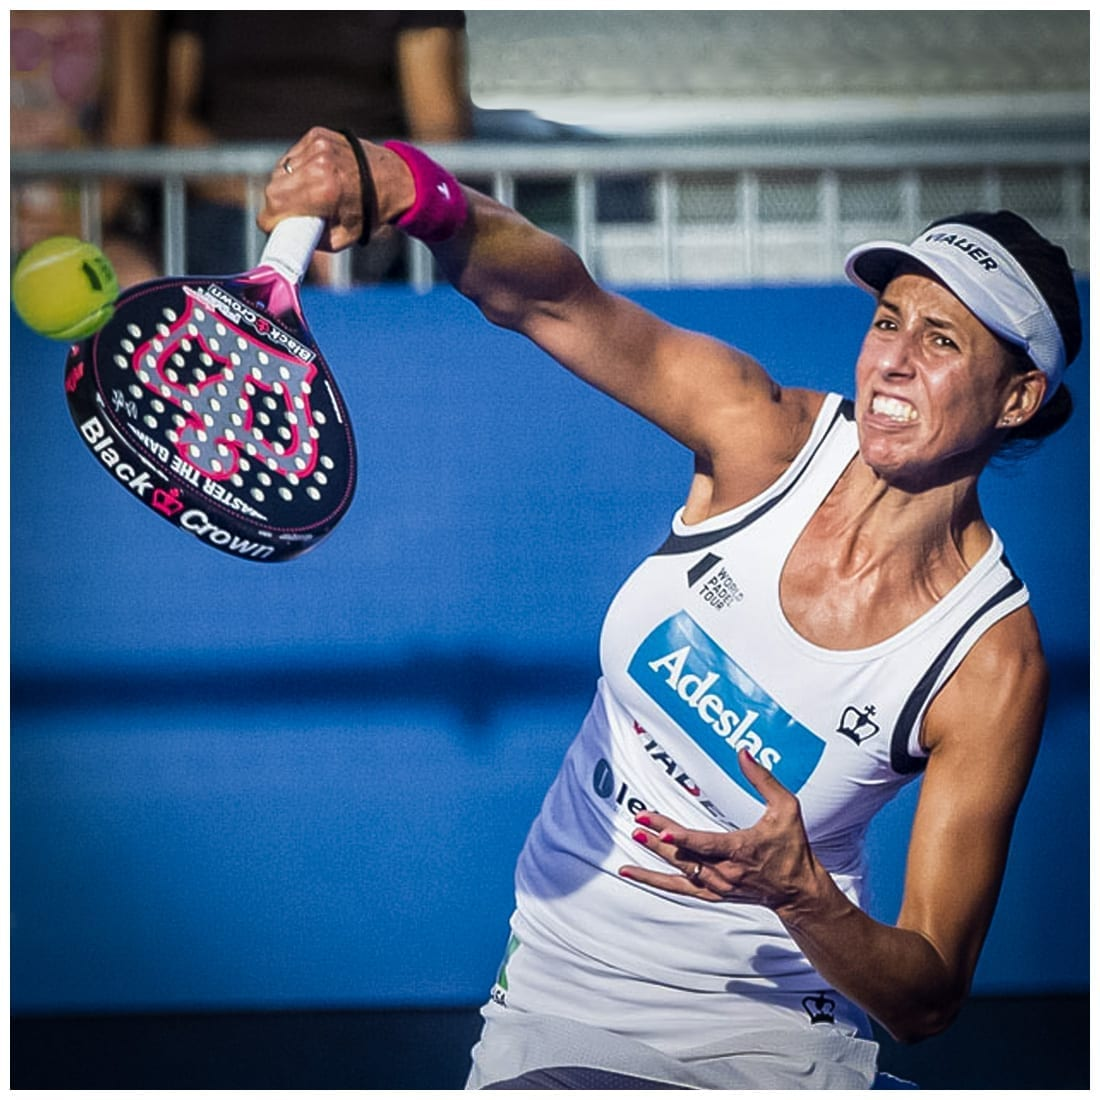 Marta Marrero, World Padel Tour Player (WPT) in action playing with Black Crown Padel Racket